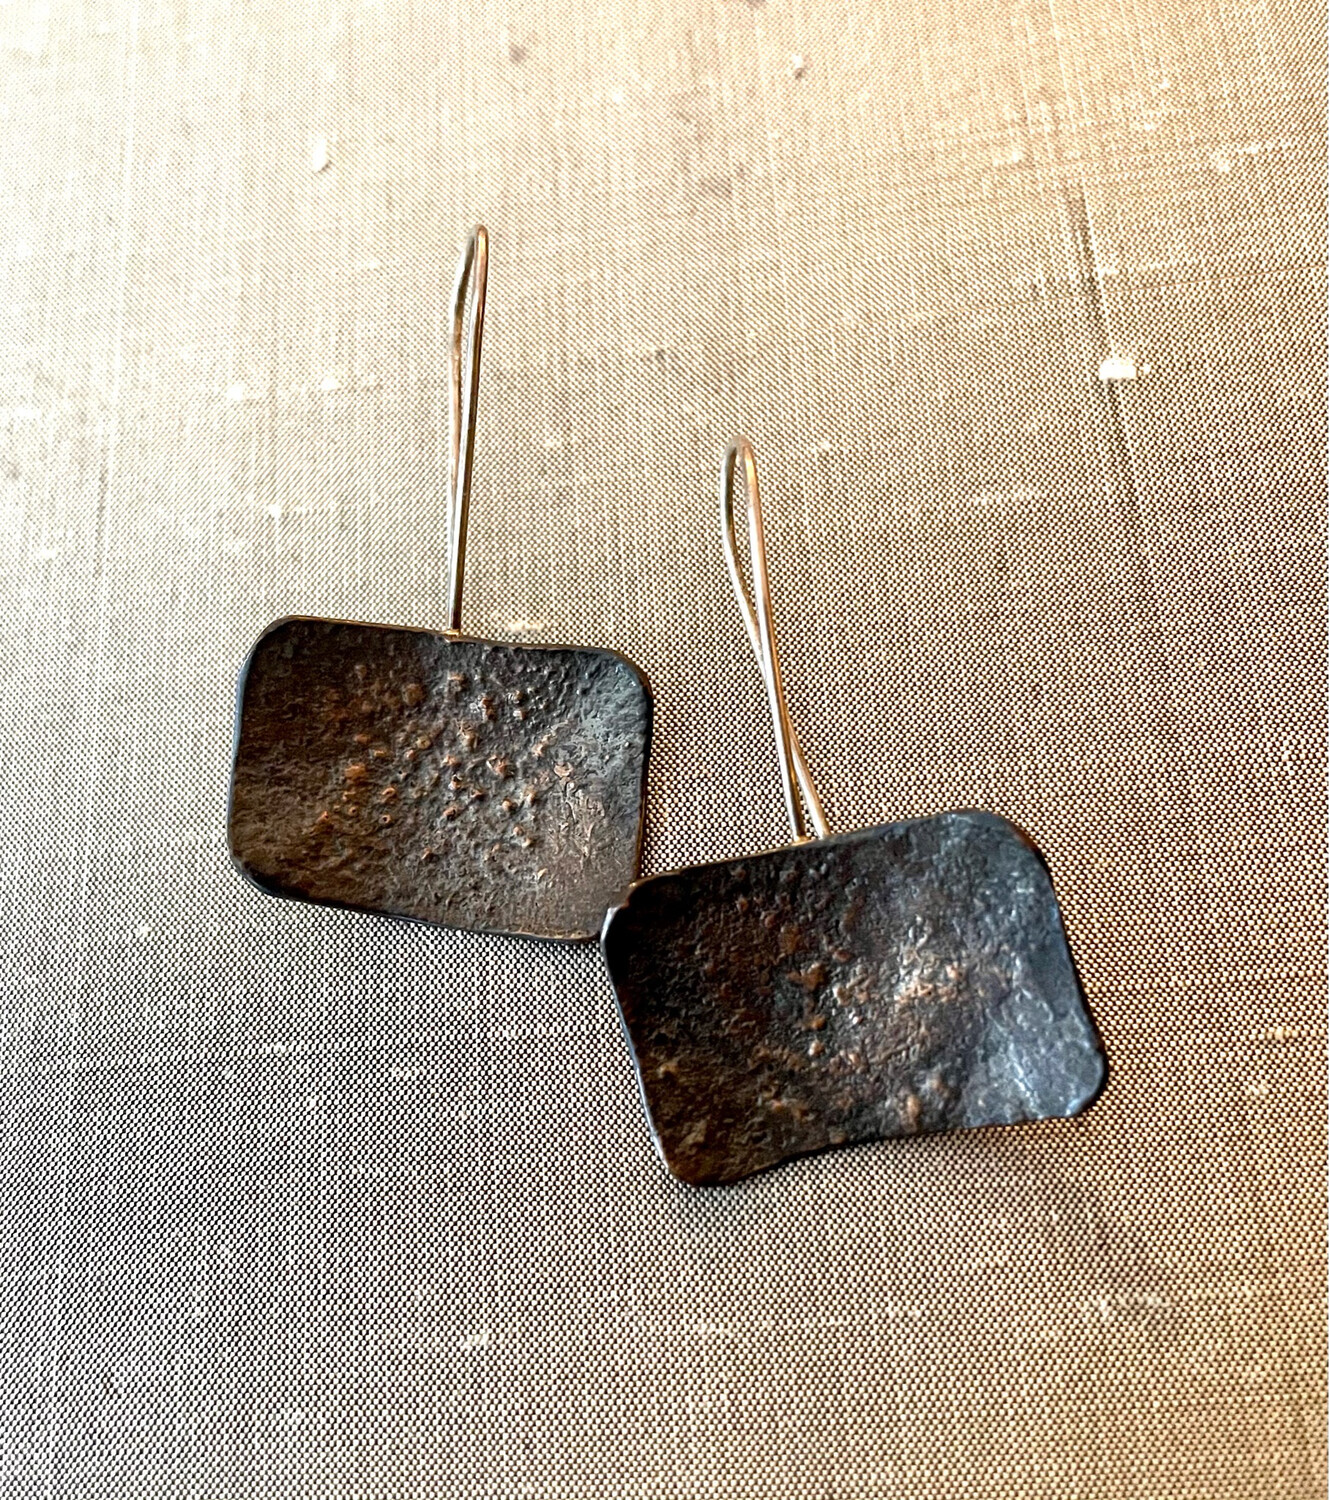 Reticulated Rectangular Earrings SOLD